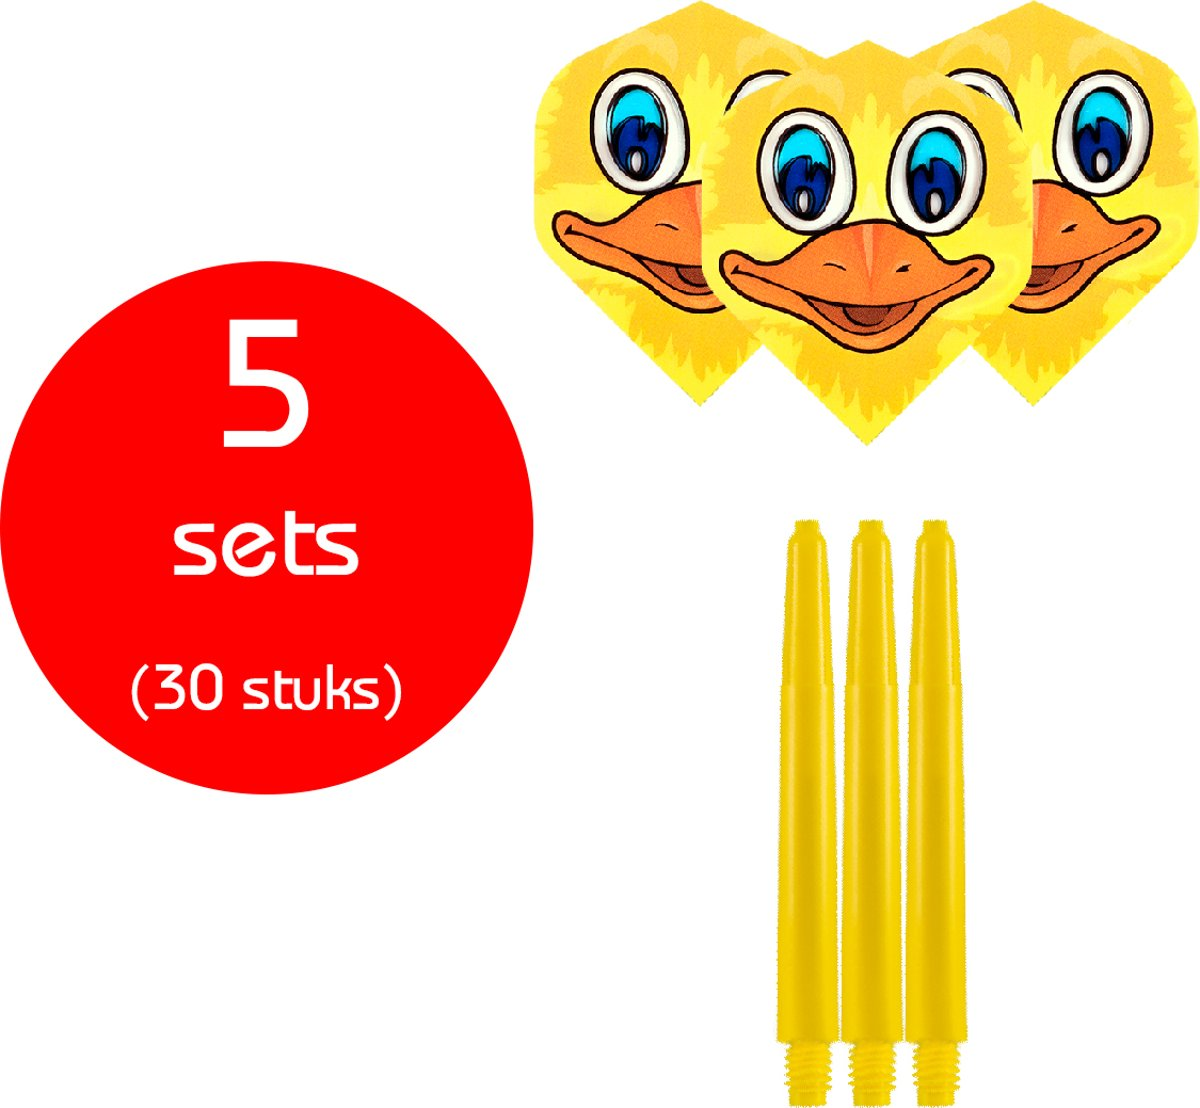 Dragon Darts - 5 sets (30 stuks) - medium - darts shafts - inclusief - ducky- darts flights - geel kopen